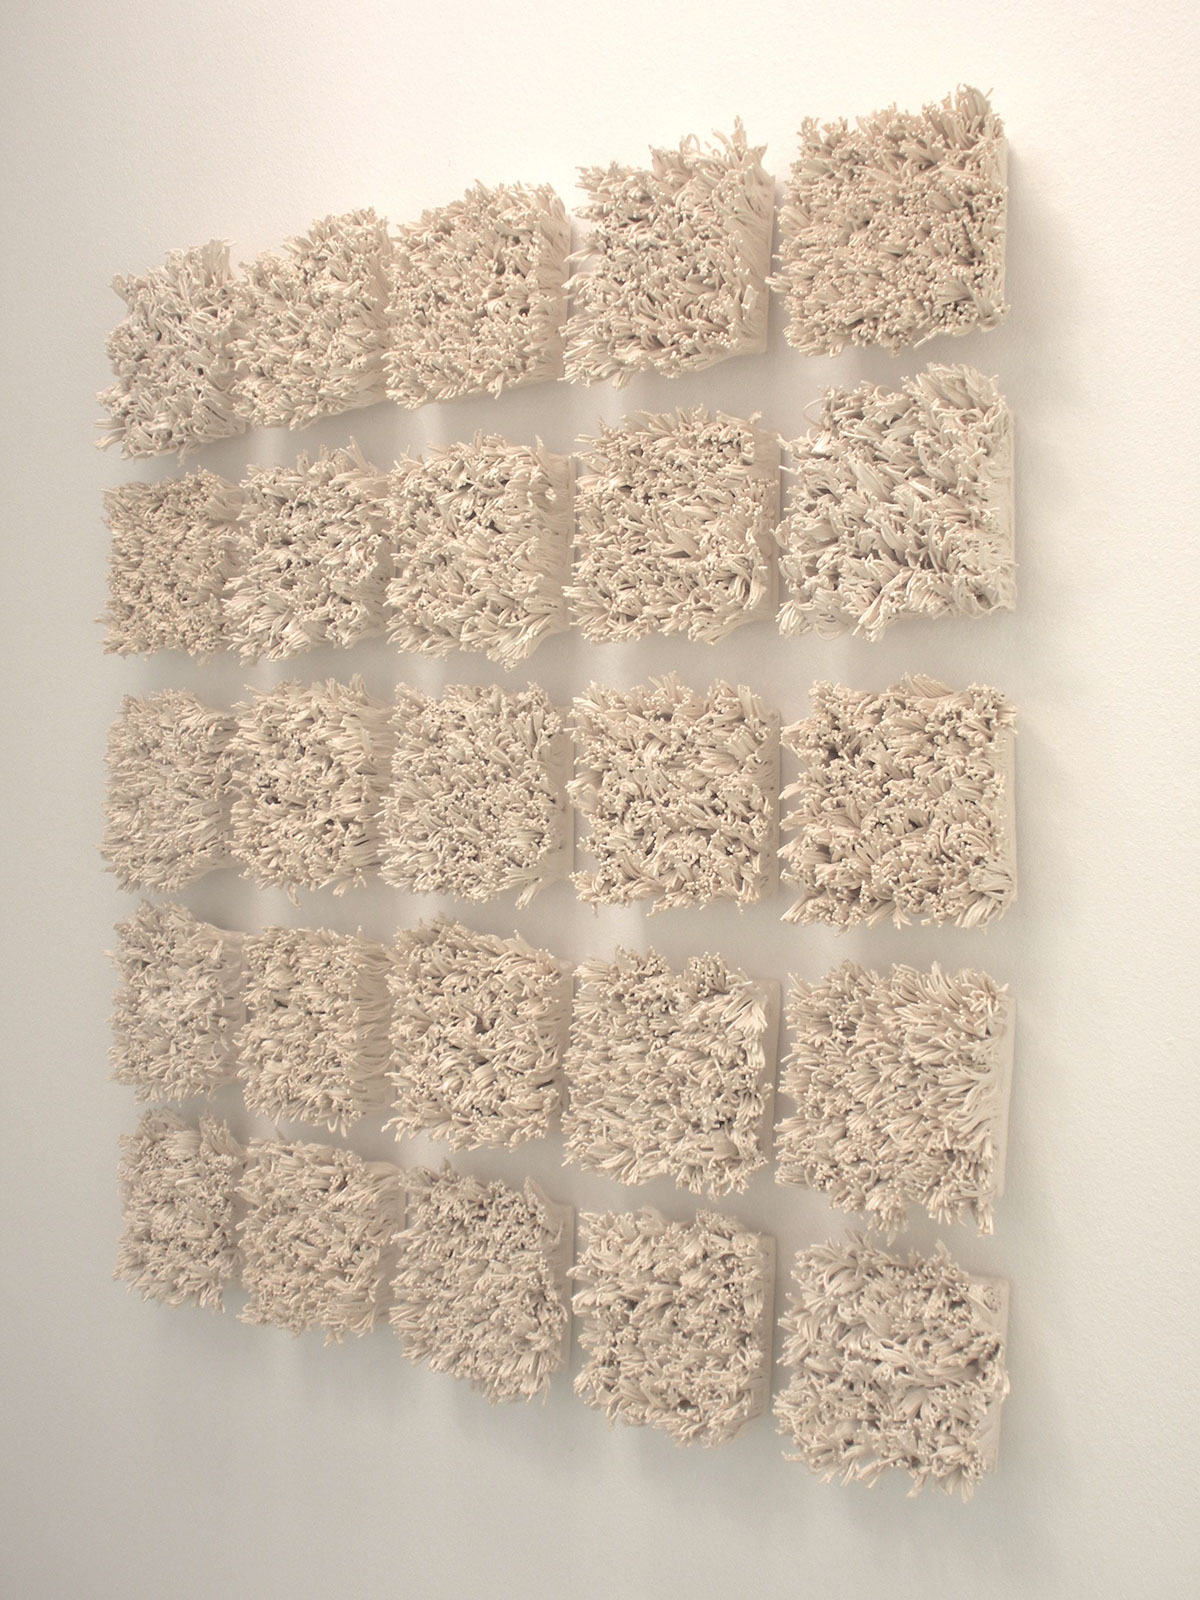 BLOOM, Ceramic Tile Wall Installation On Behance